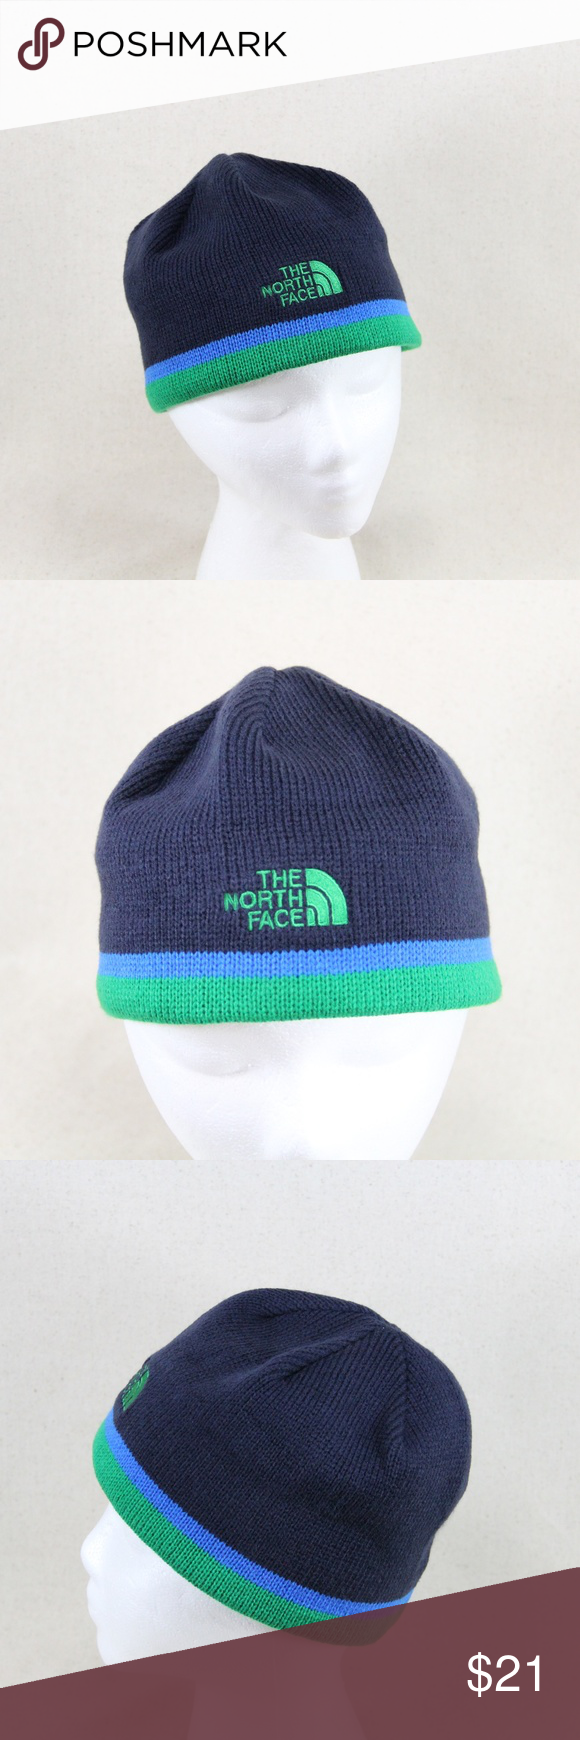 513ad832a The North Face Beanie Skull Cap Hat - Youth Medium The North Face ...